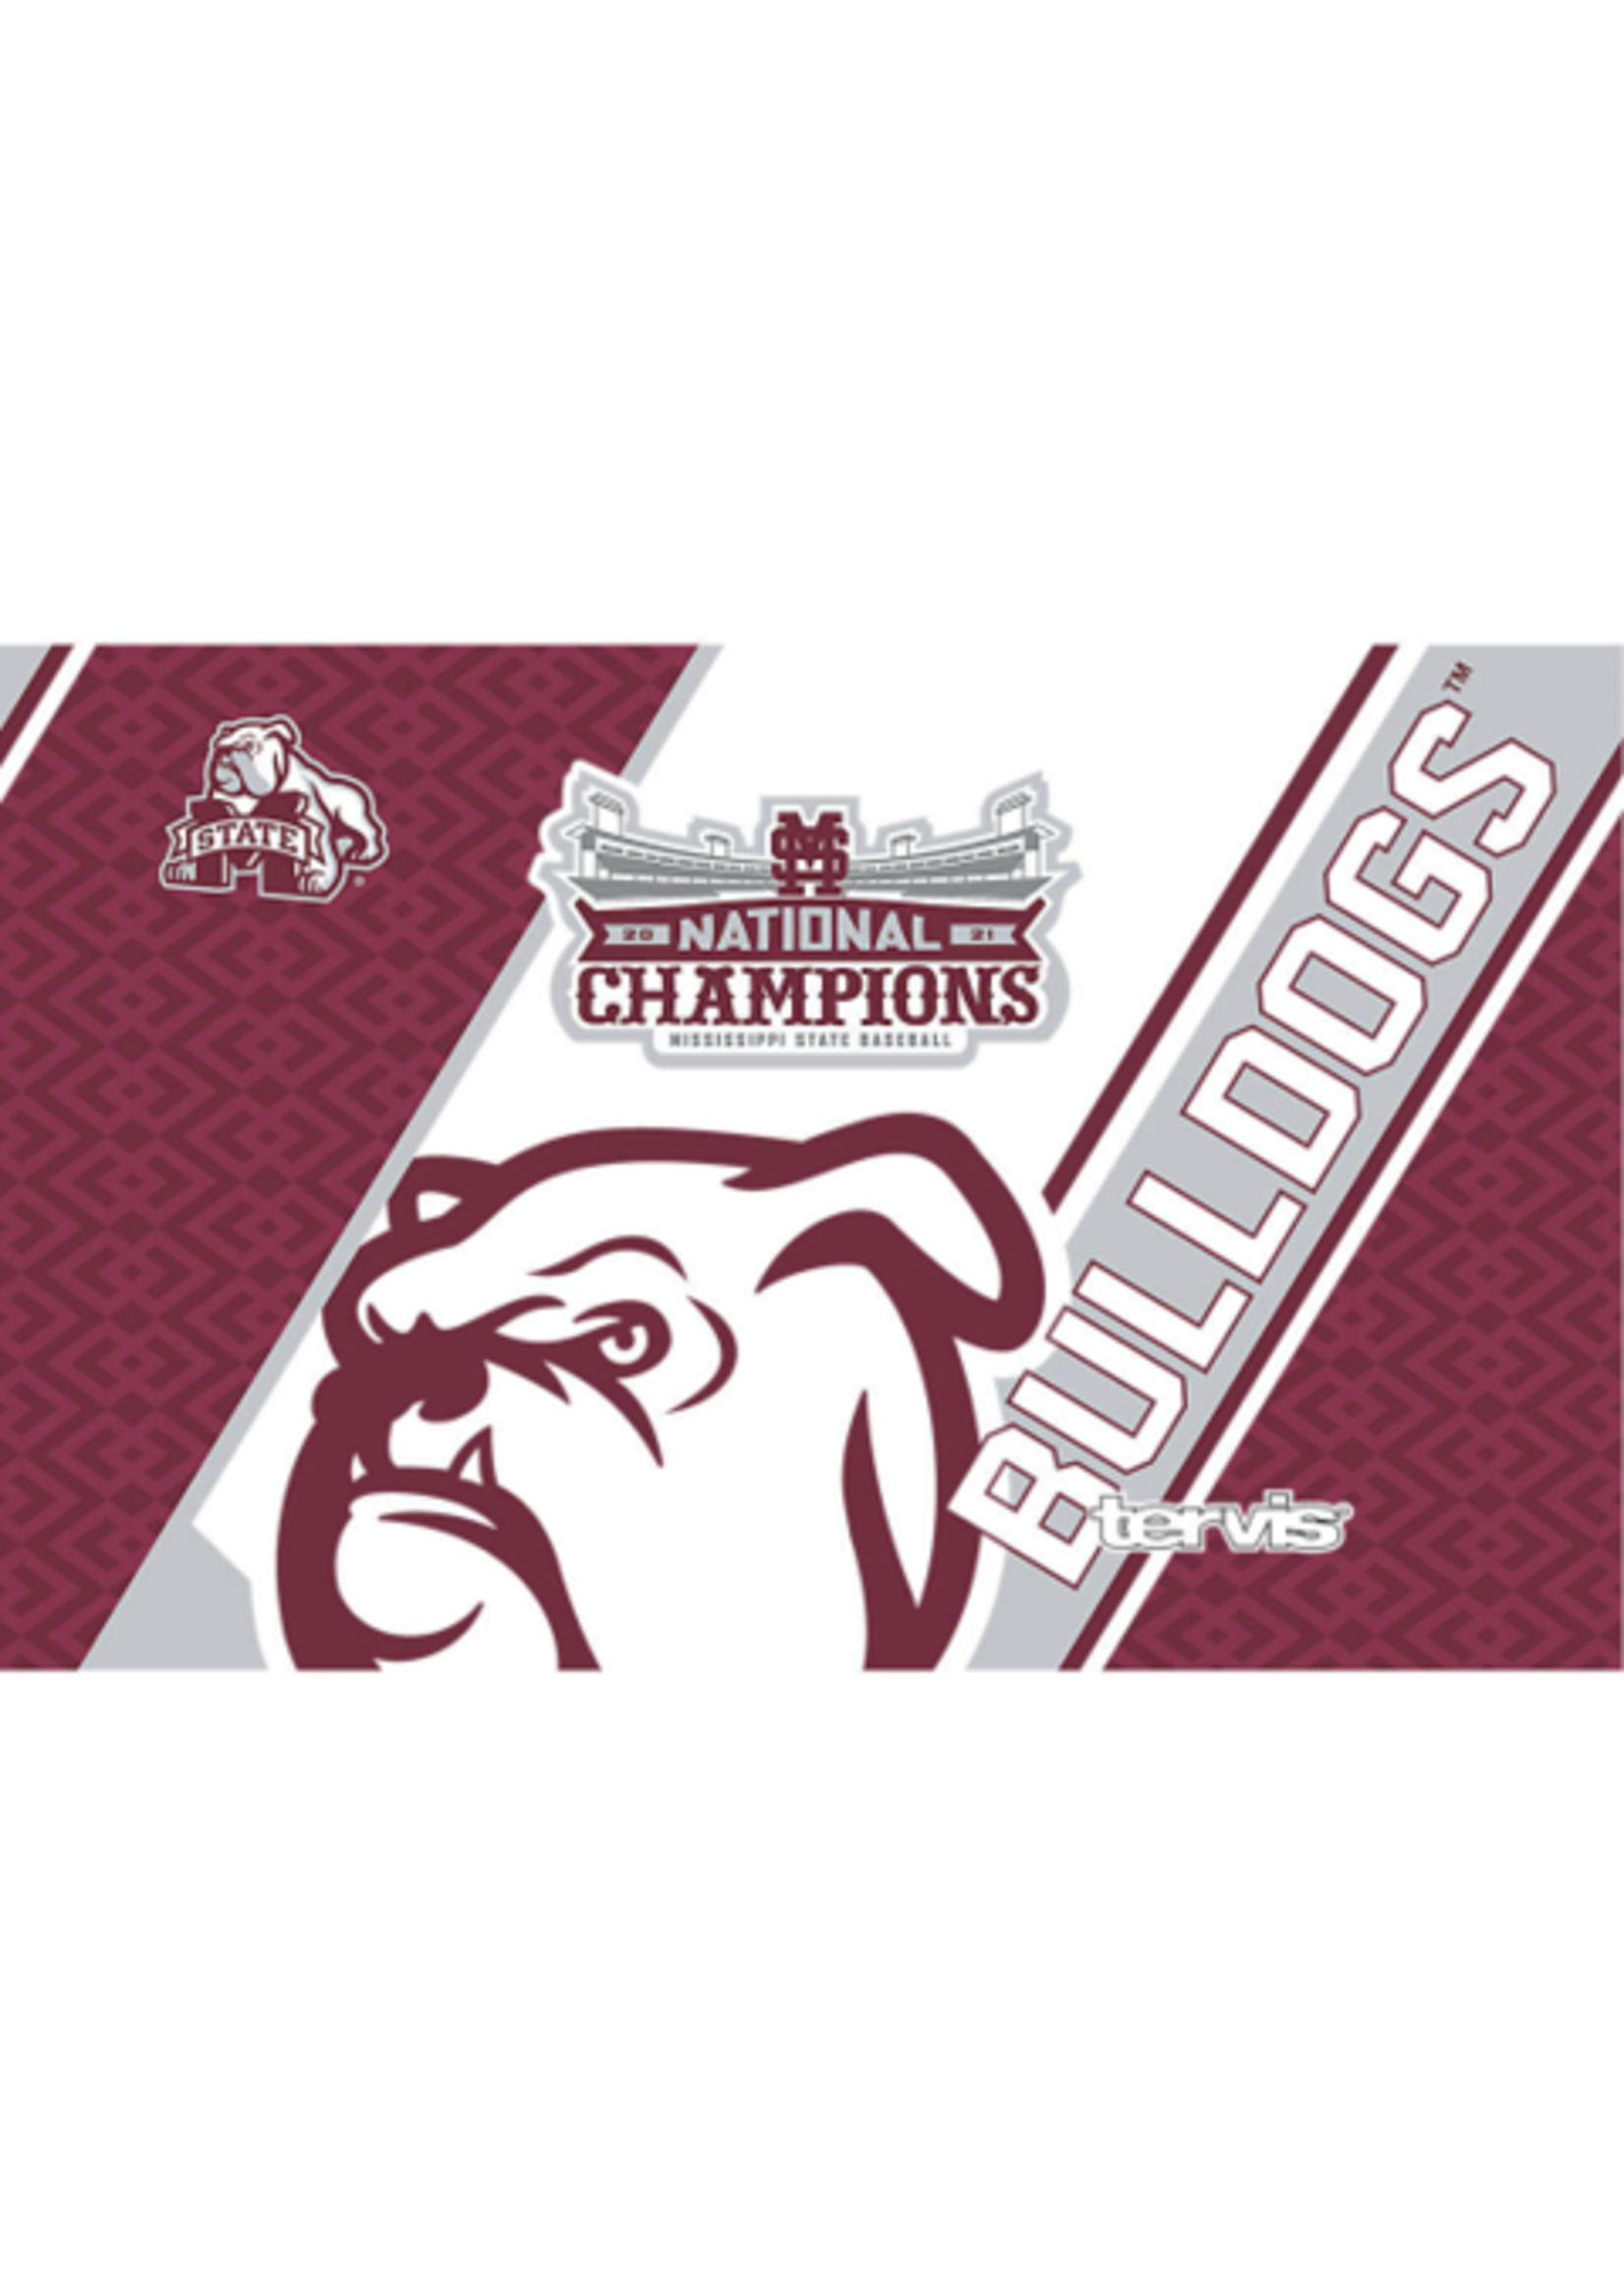 Tervis Tumblers Mississippi State Bulldogs 2021 College World Series Champions Stainless Steel With Slider Lid